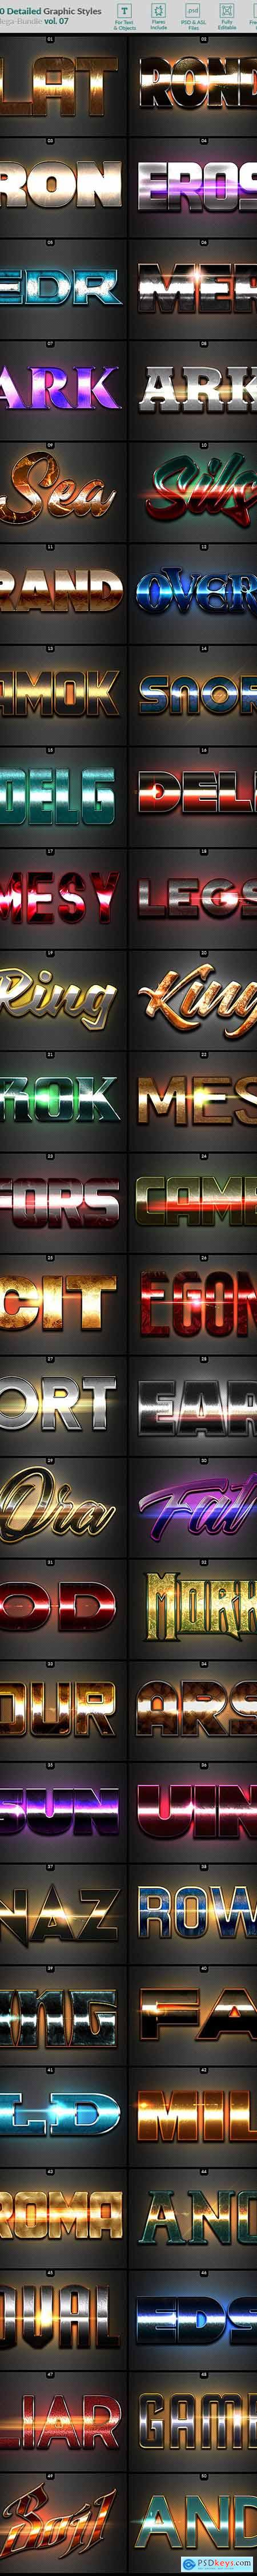 50 Text Effects - Bundle Vol. 07 23026115